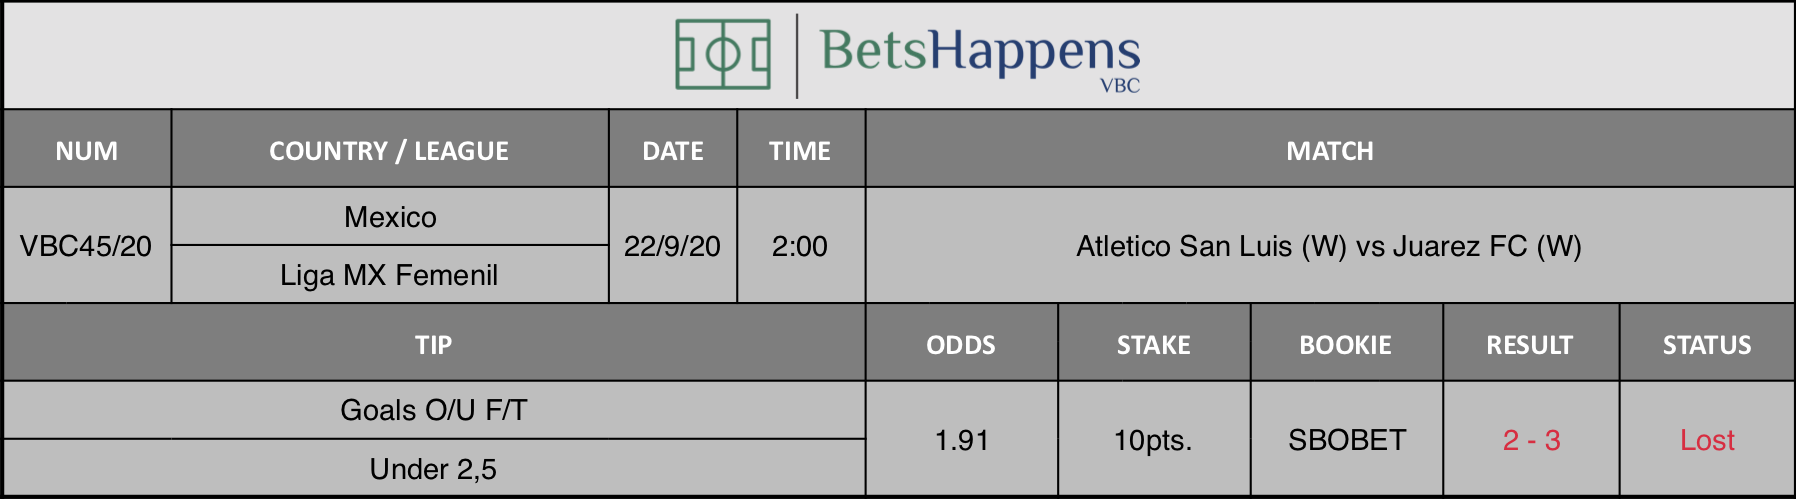 Results of our advice for the Atletico San Luis (W) vs Juarez FC (W) match in which Goals O / U F / T Under 2,5 is recommended.